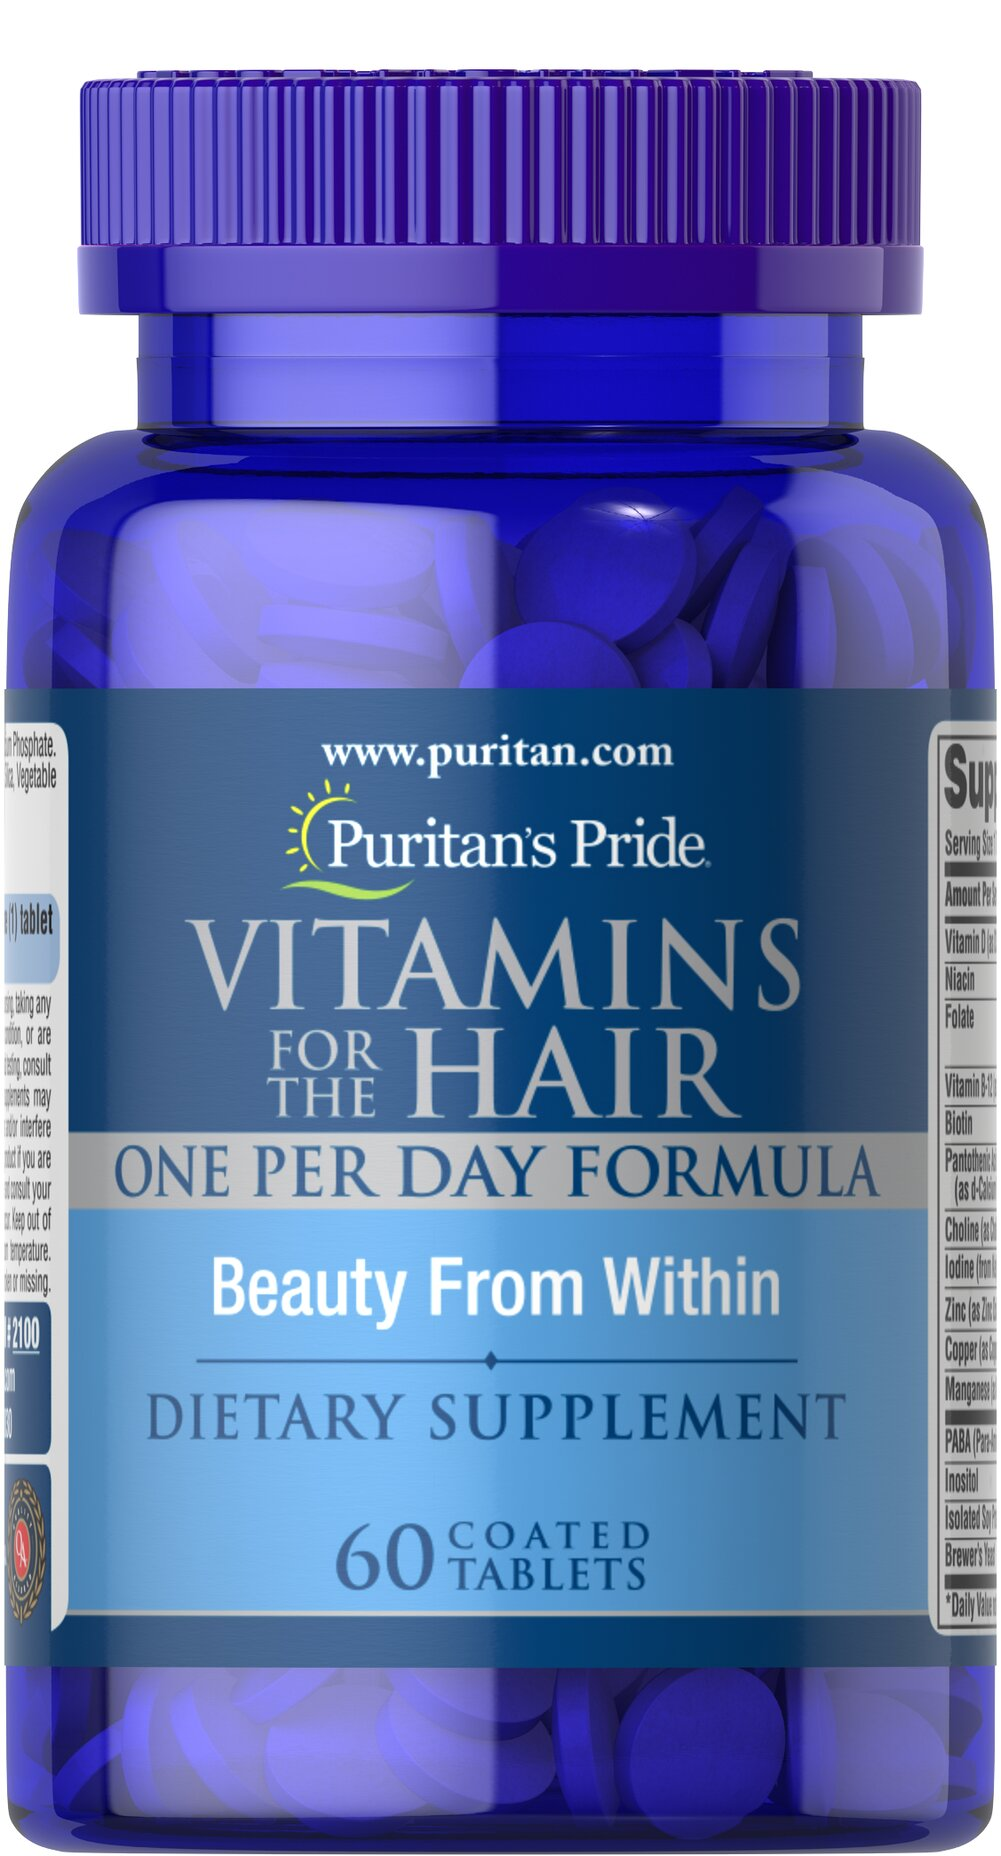 Vitamins for the Hair <p>A Natural Vitamin-Mineral Complex, especially Formulated for your Hair</p><p>Puritan's Pride has formulated Vitamins  for the Hair, to supplement your diet plan for a healthier looking head of hair.  Feed your hair the vitamins and minerals needed to help it be its healthiest.**</p> 60 Coated Caplets  $13.49